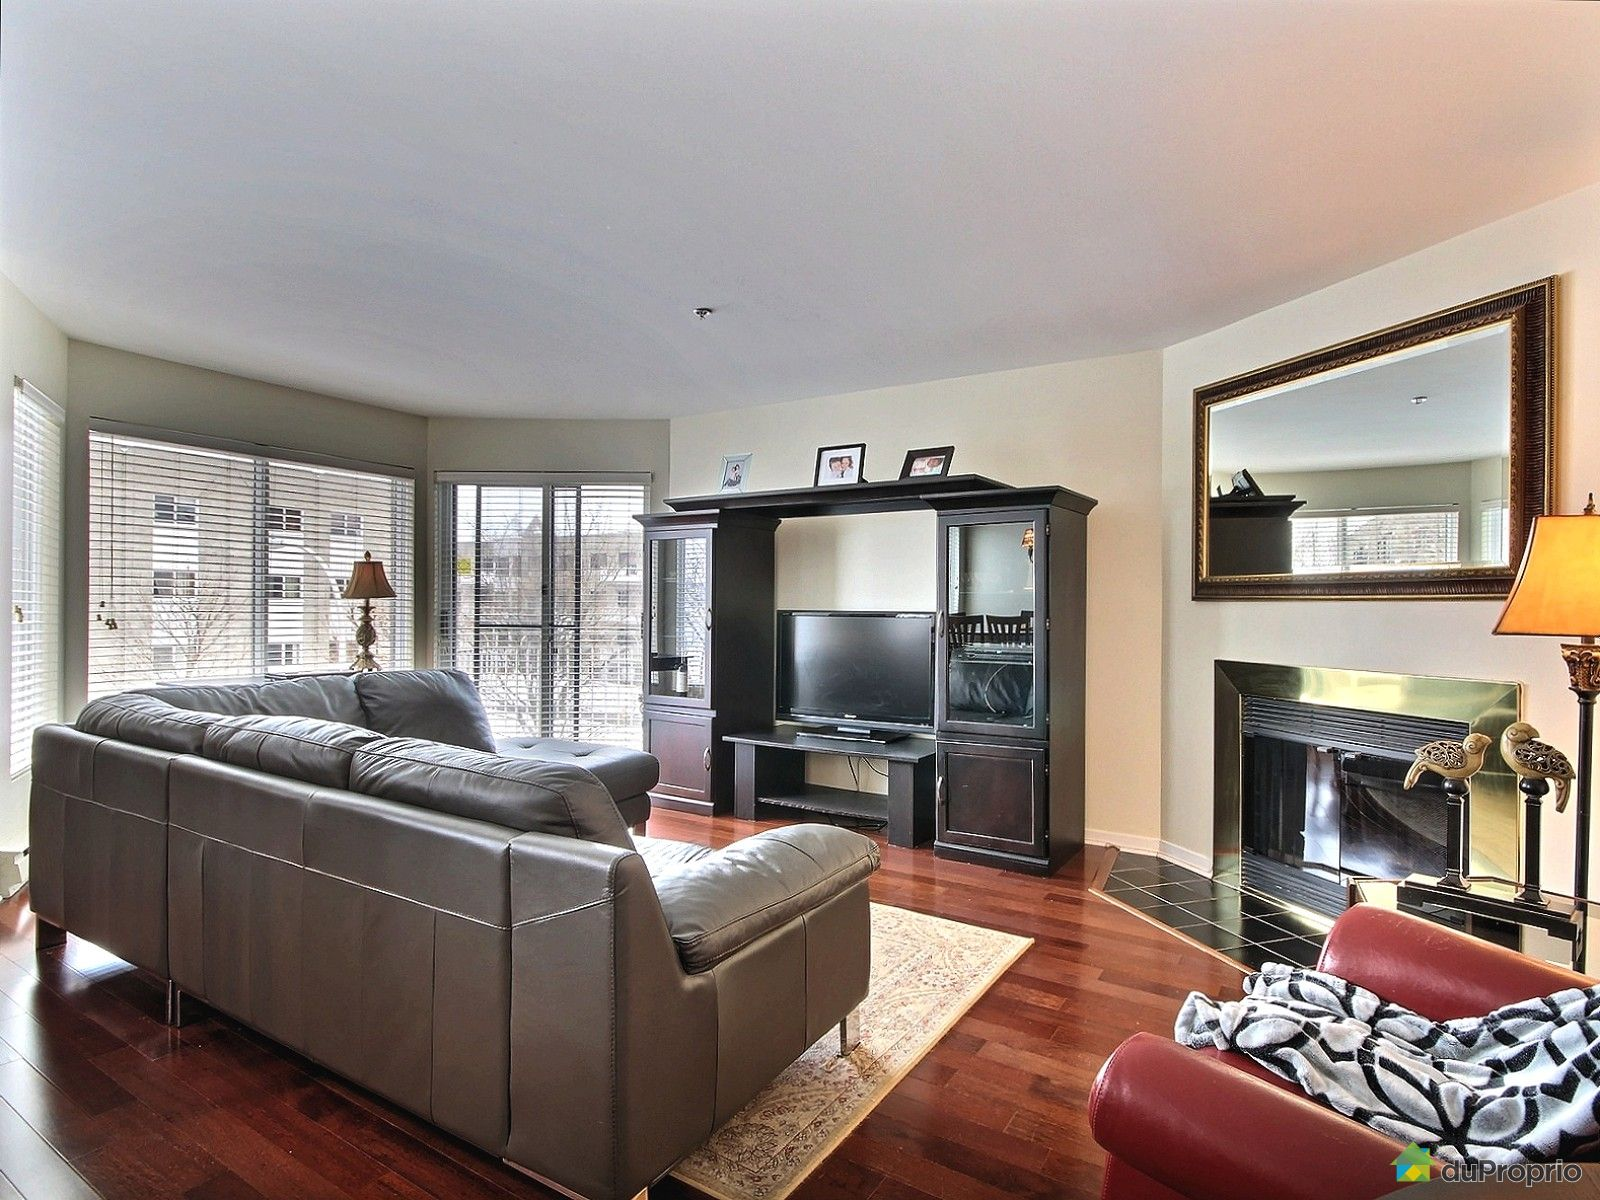 Condo for sale in Montreal 303 5250 rue Riviera DuProprio 589366 #6C3D33